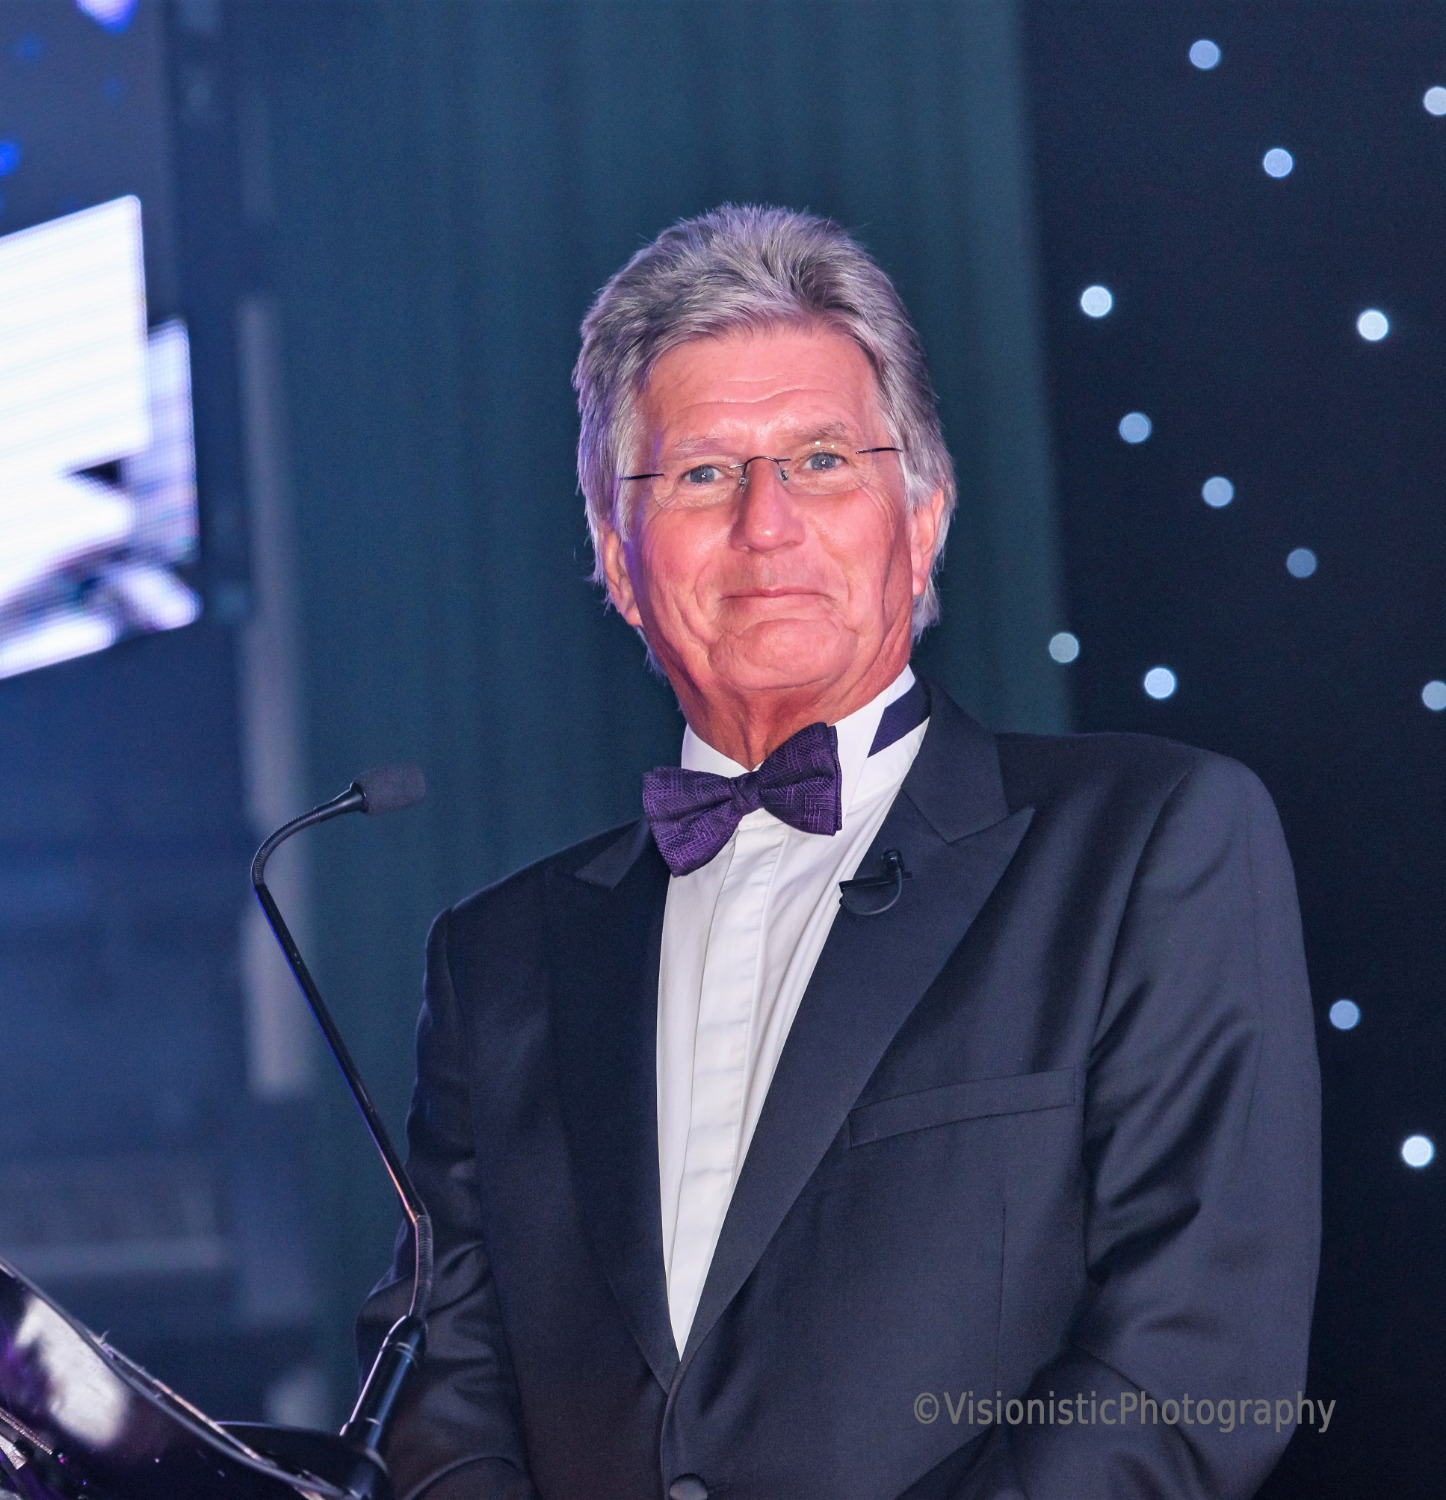 Promo Mark Jones (Master of Ceremonies) Master of Ceremonies Merseyside